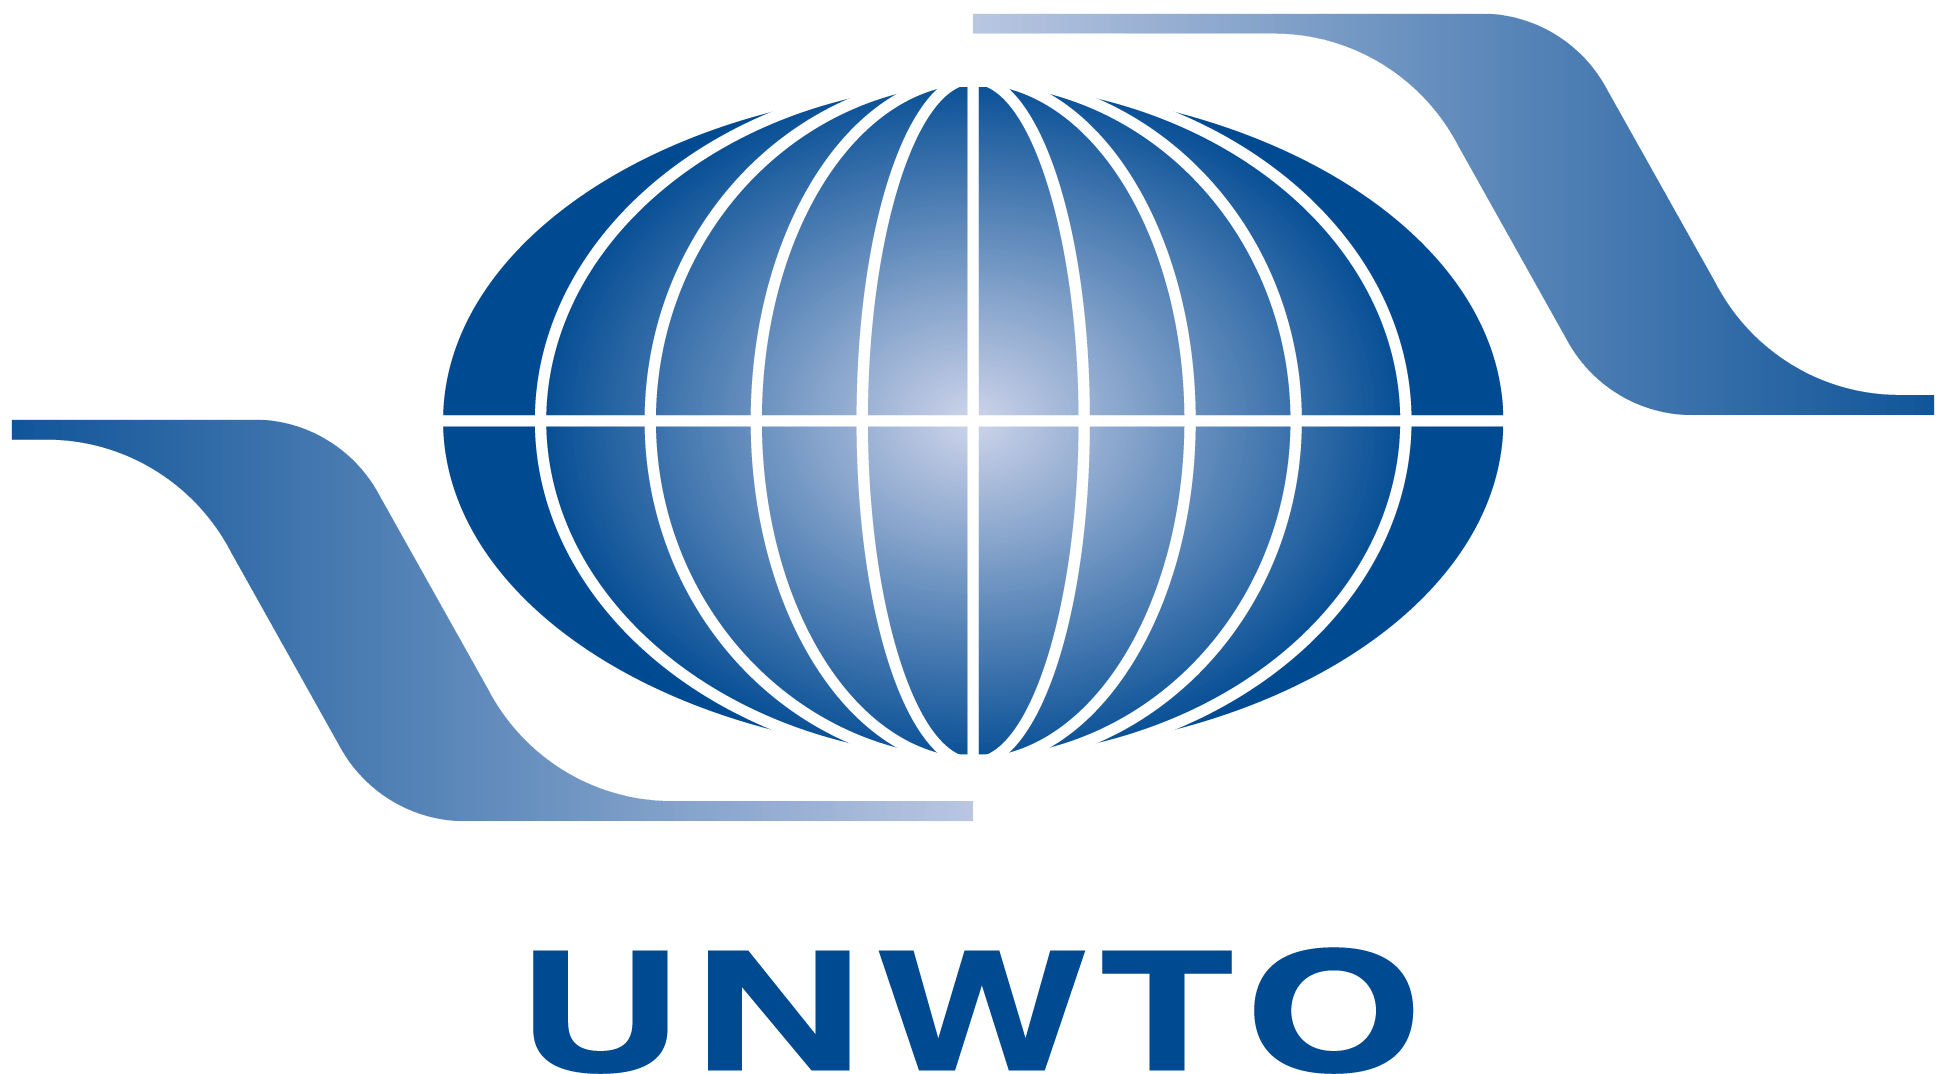 UNWTO Logo [nwto.org] png